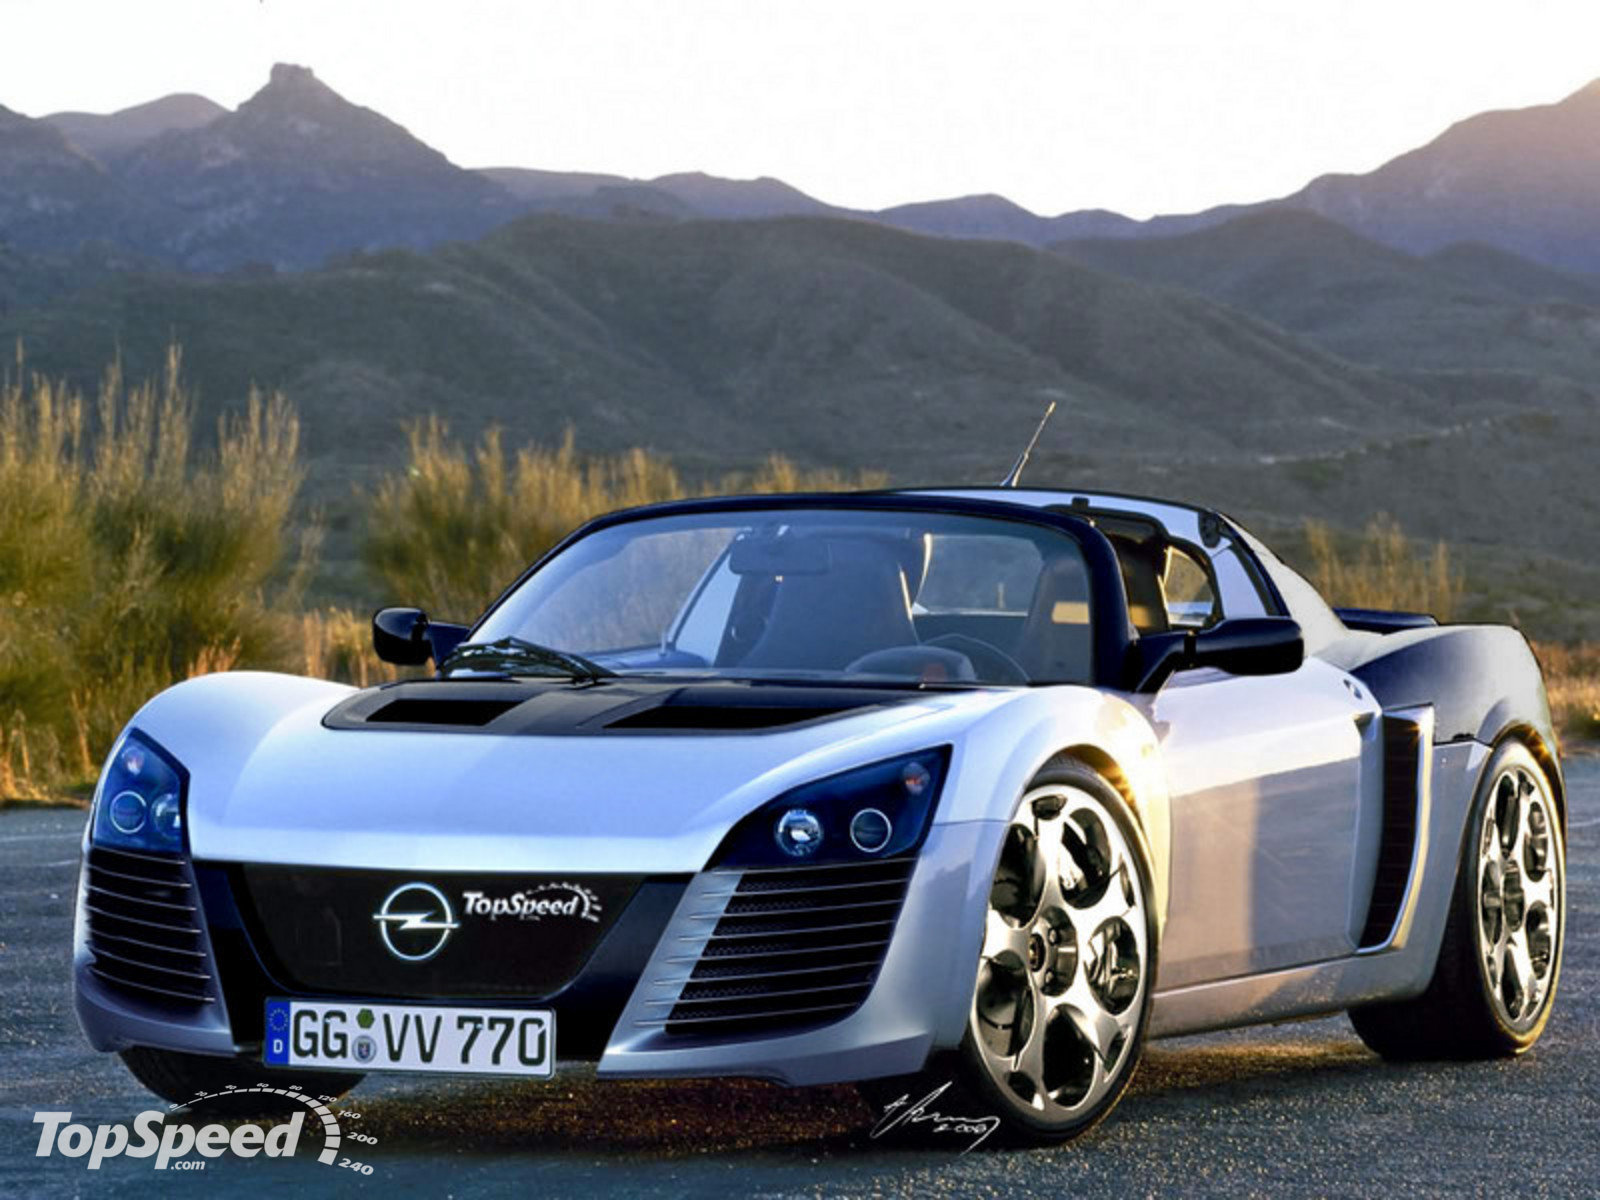 OPEL is the producer of the 2001 Opel Speedster. This car was first launched